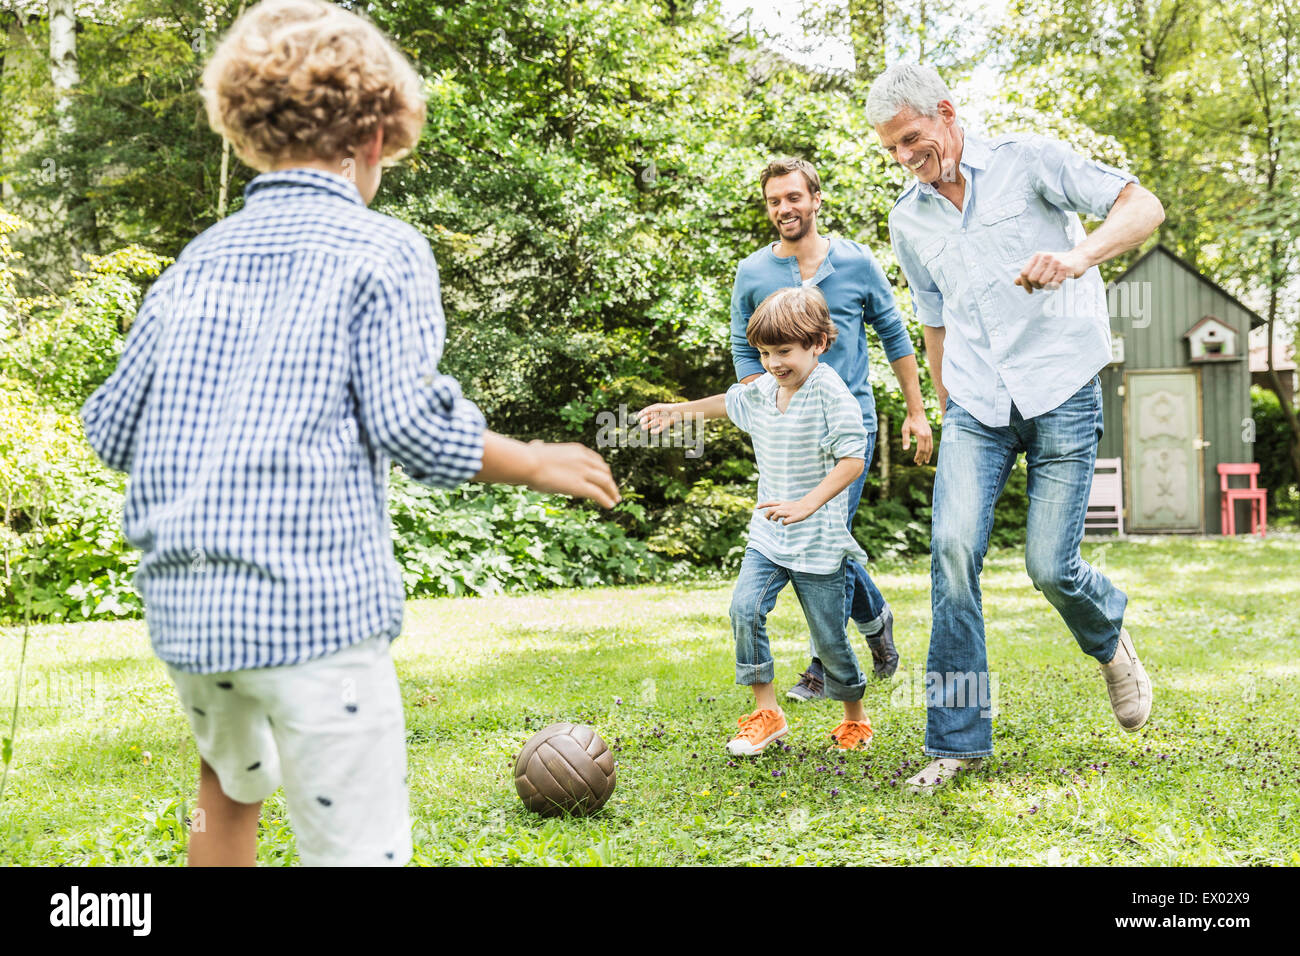 Mid adult man with father and sons playing garden soccer - Stock Image